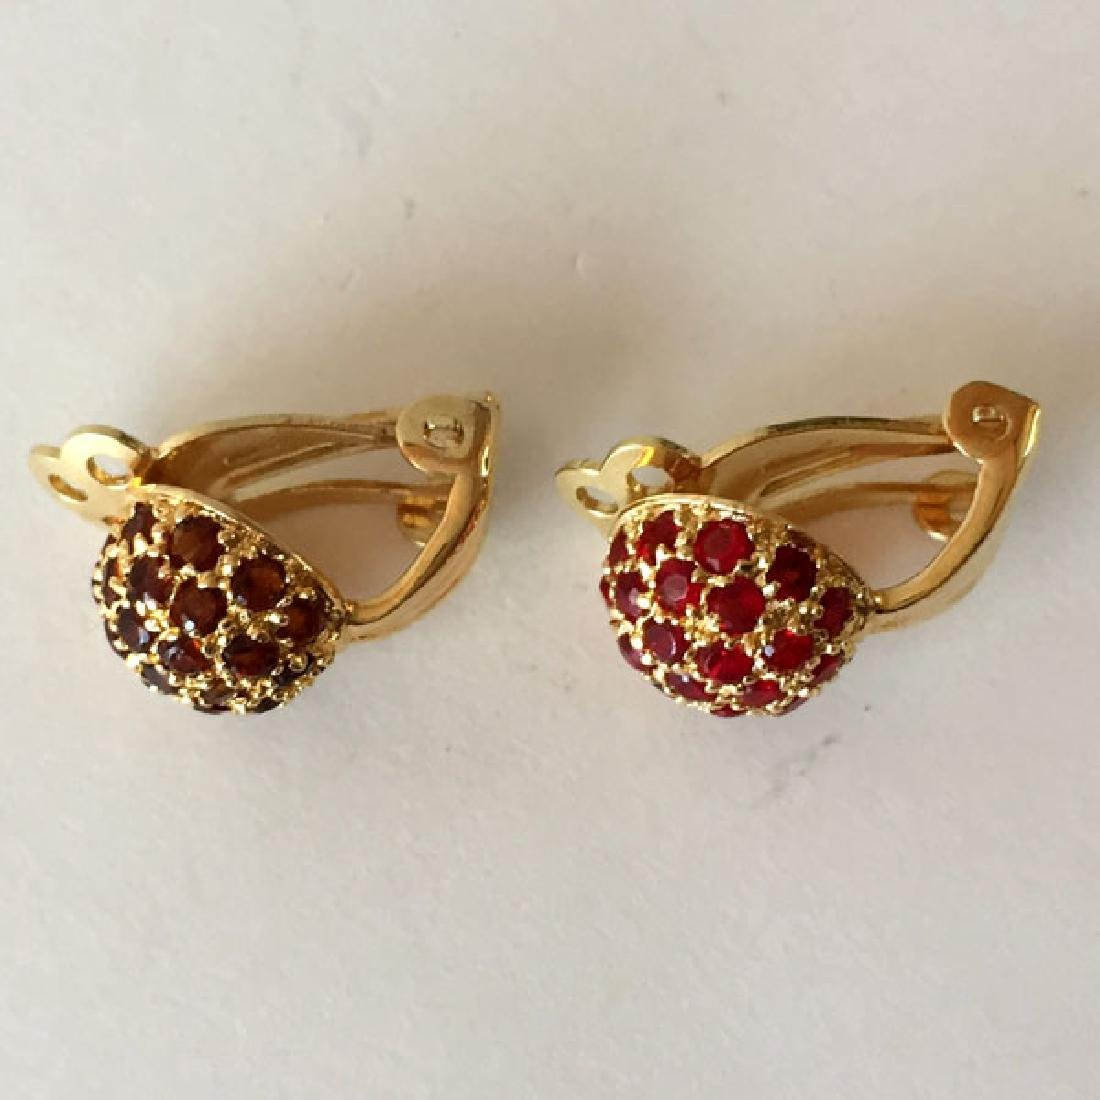 Gold plated sterling silver dome shaped ear clips with - 2